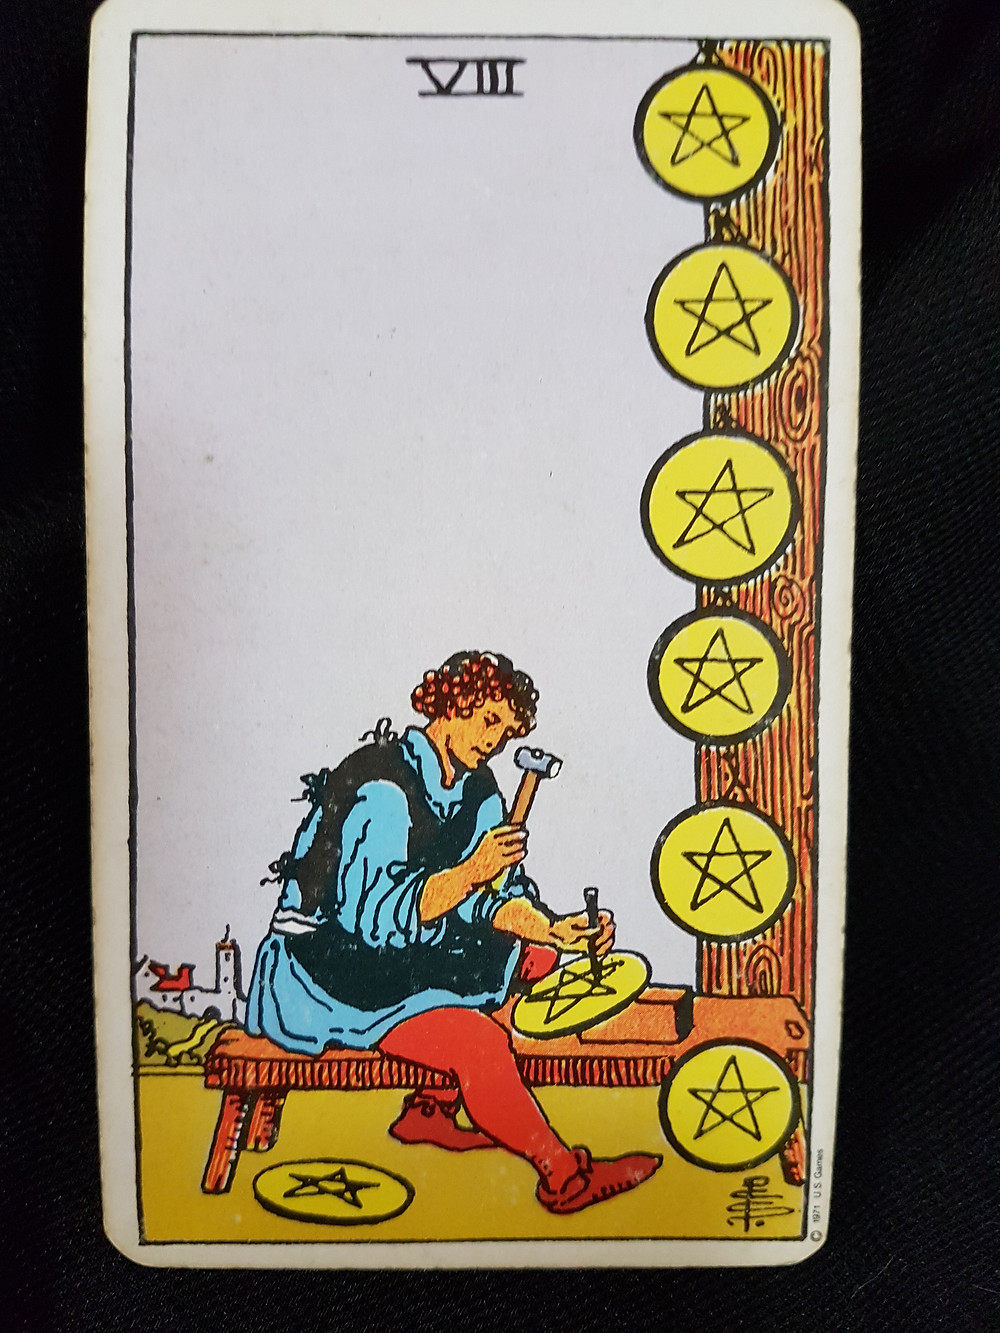 8 of Pentacles - lynsreadings.com